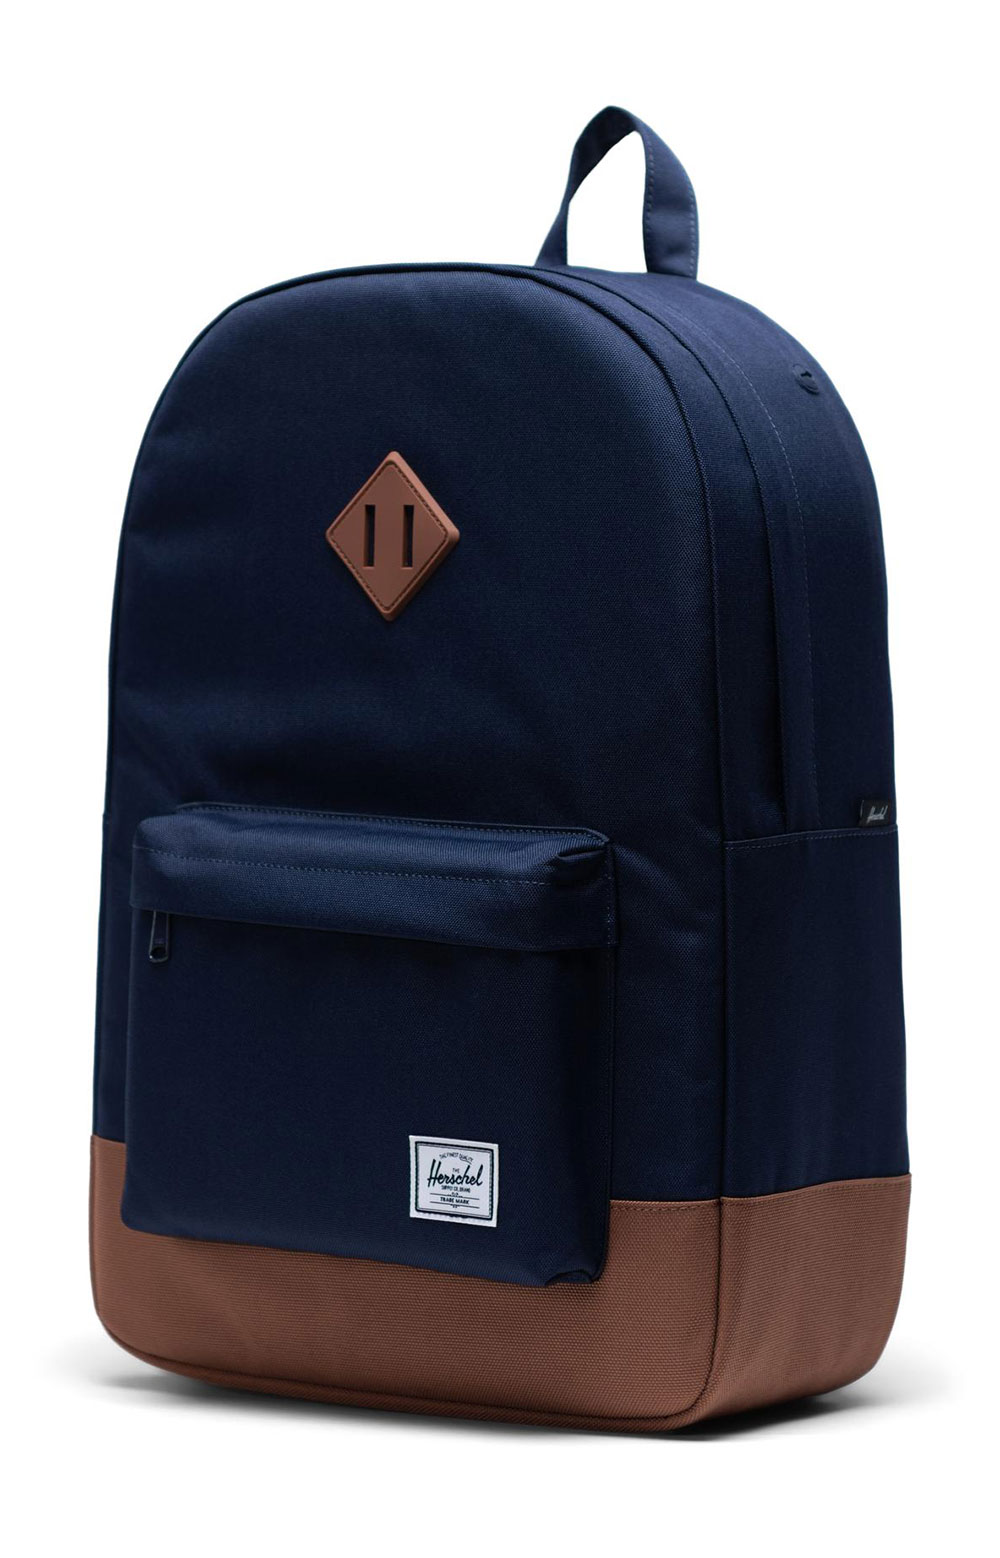 Heritage Backpack - Peacoat/Saddle Brown 3